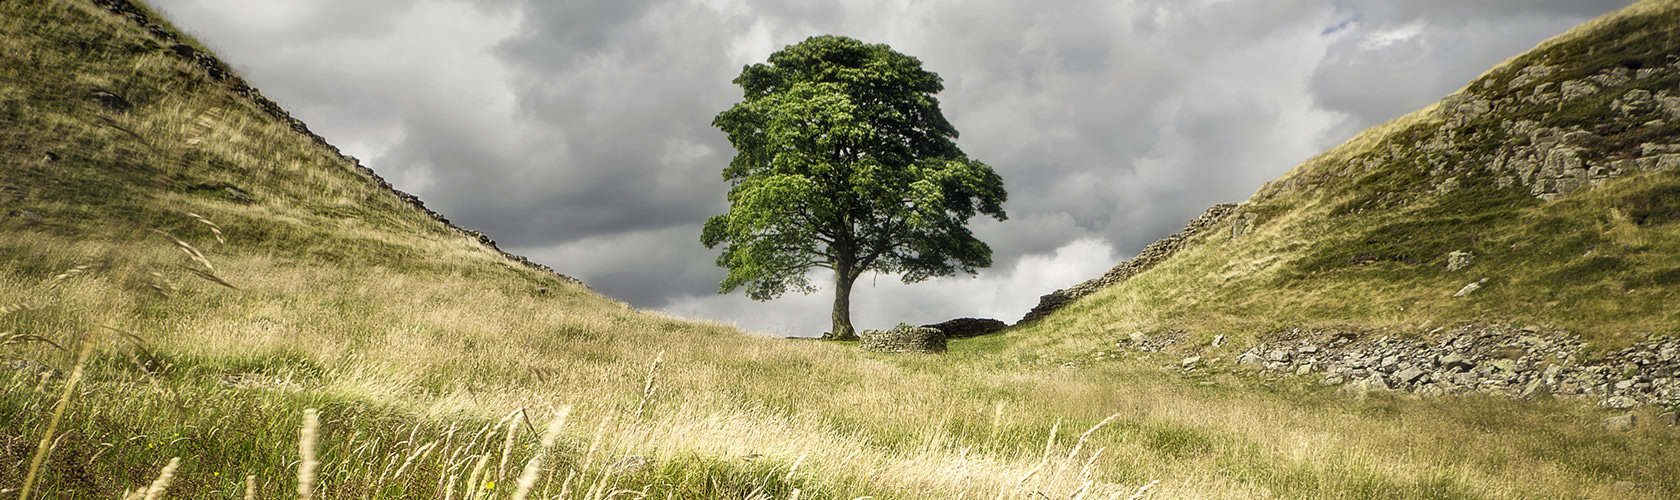 A tree between two hills